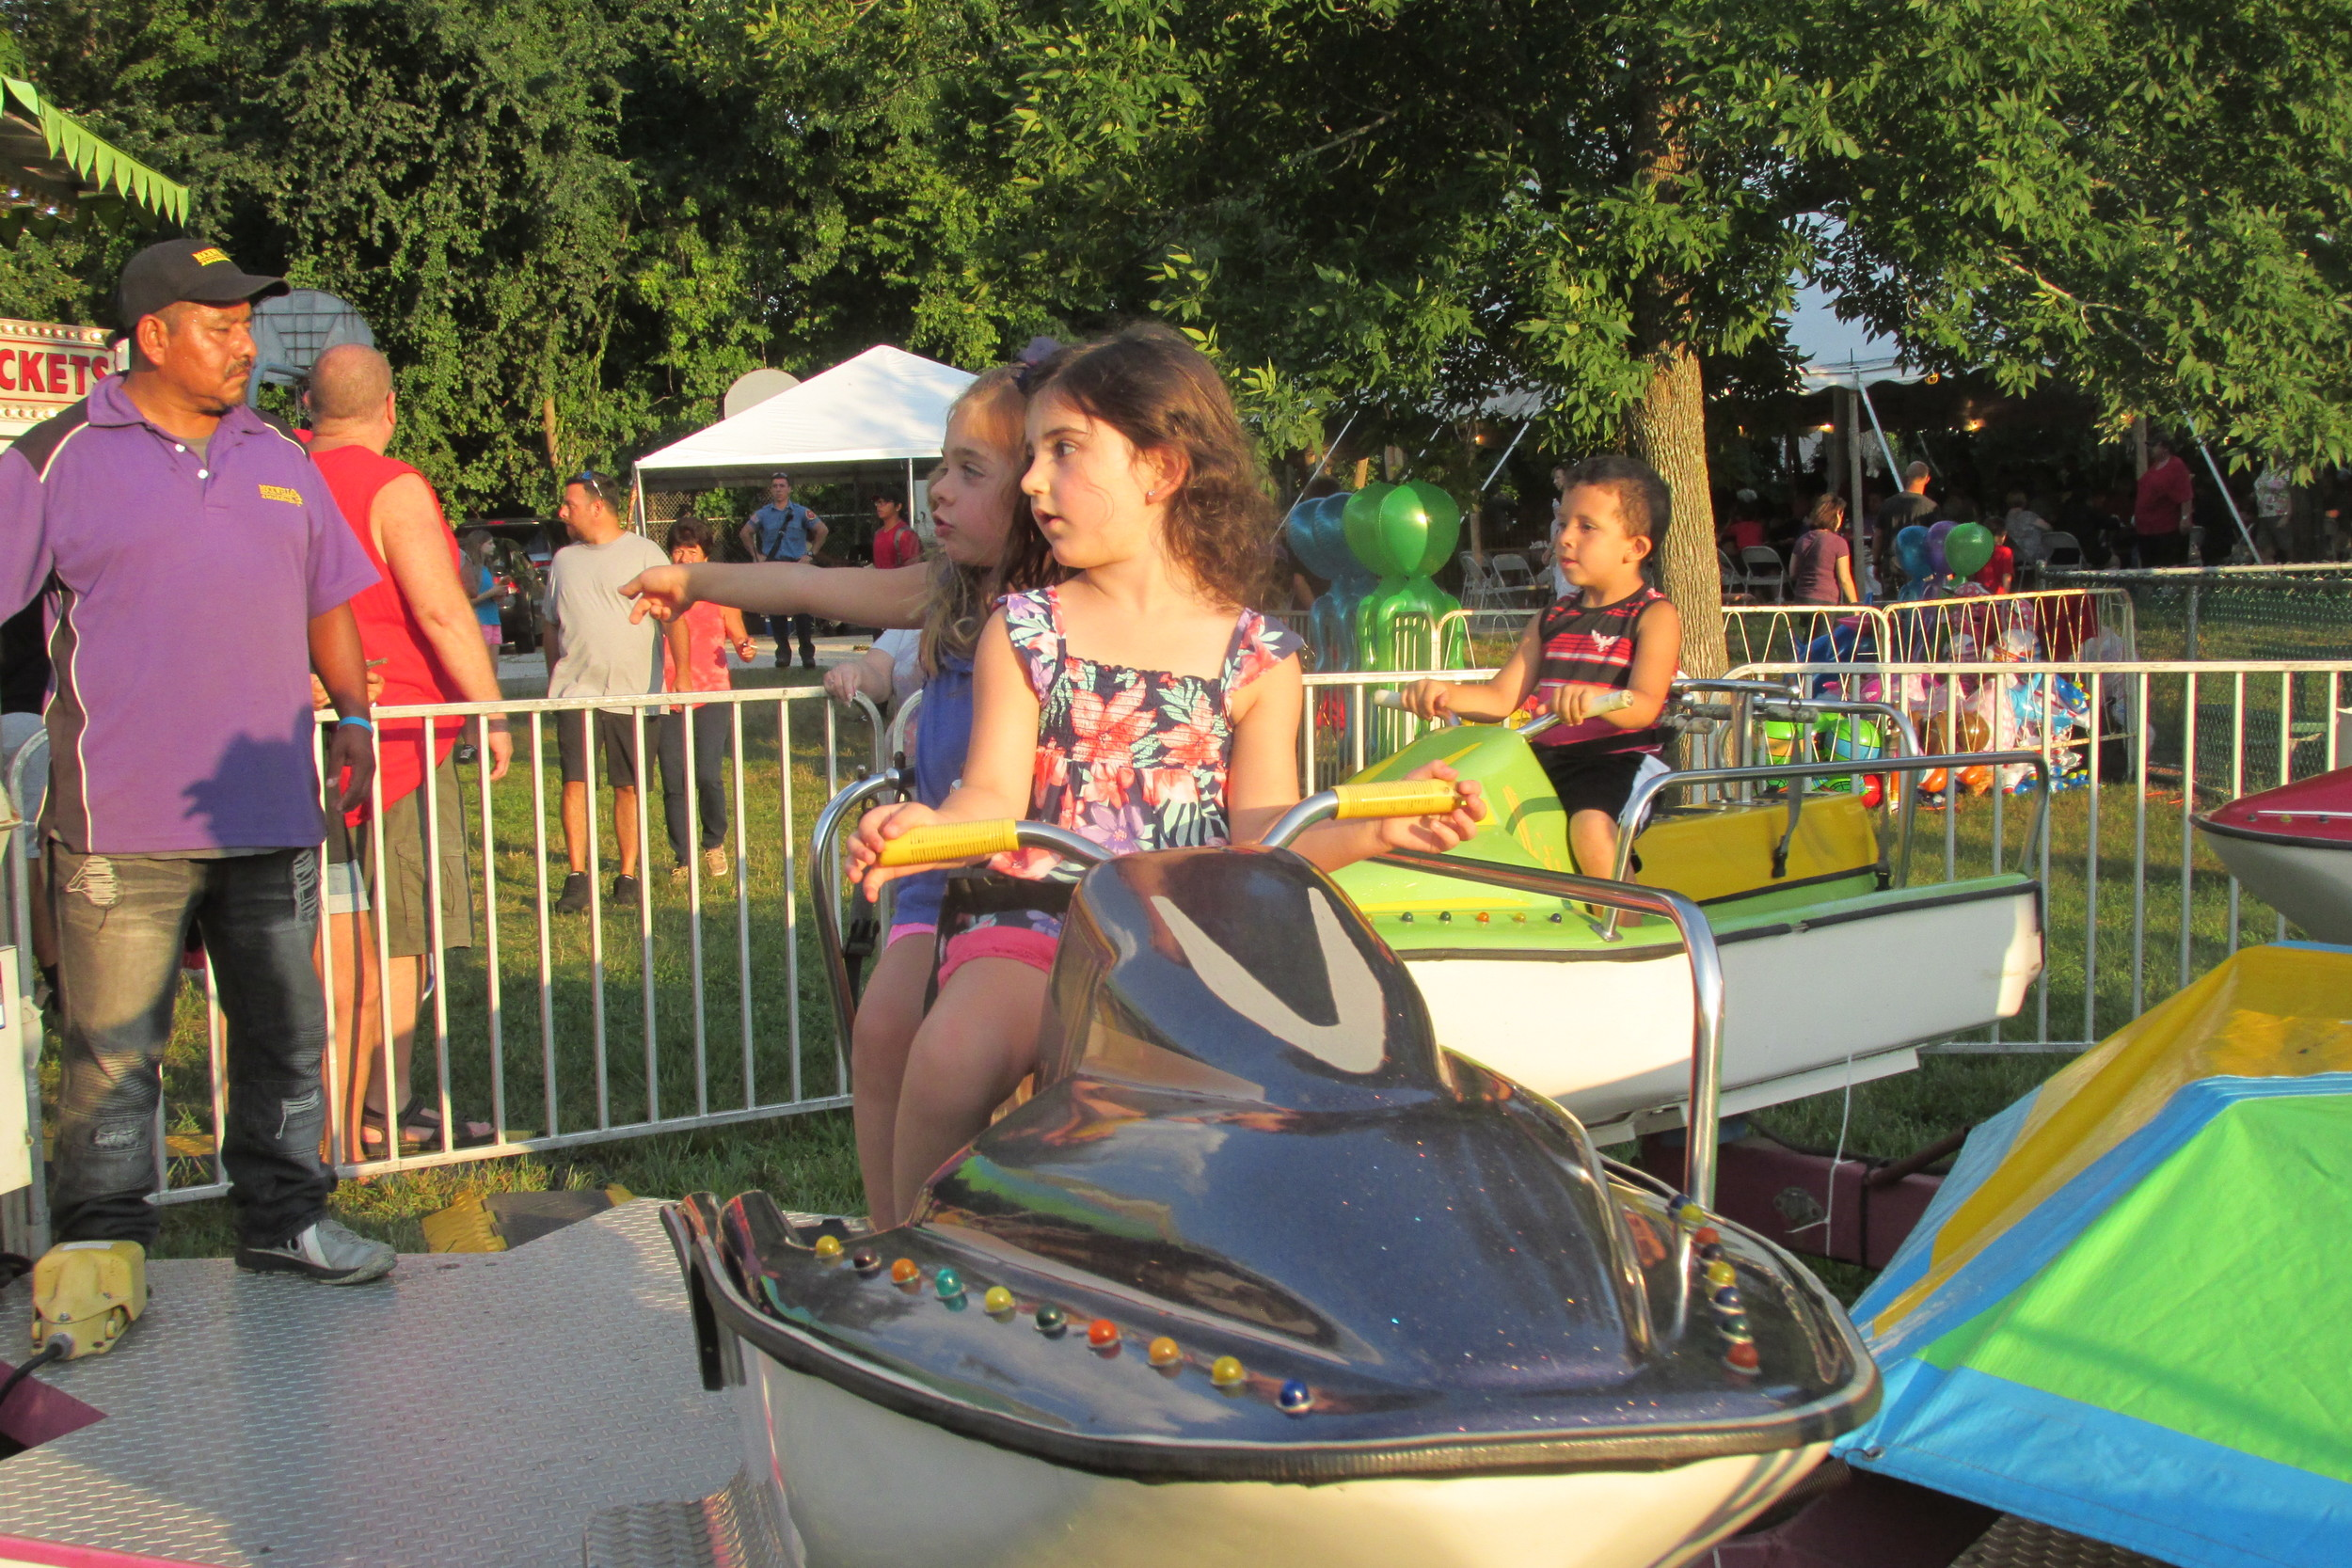 'SEASIDE': Young children of all ages enjoyed the waterless boat rides during last weekend's Saint Rocco's Feast and Festival.